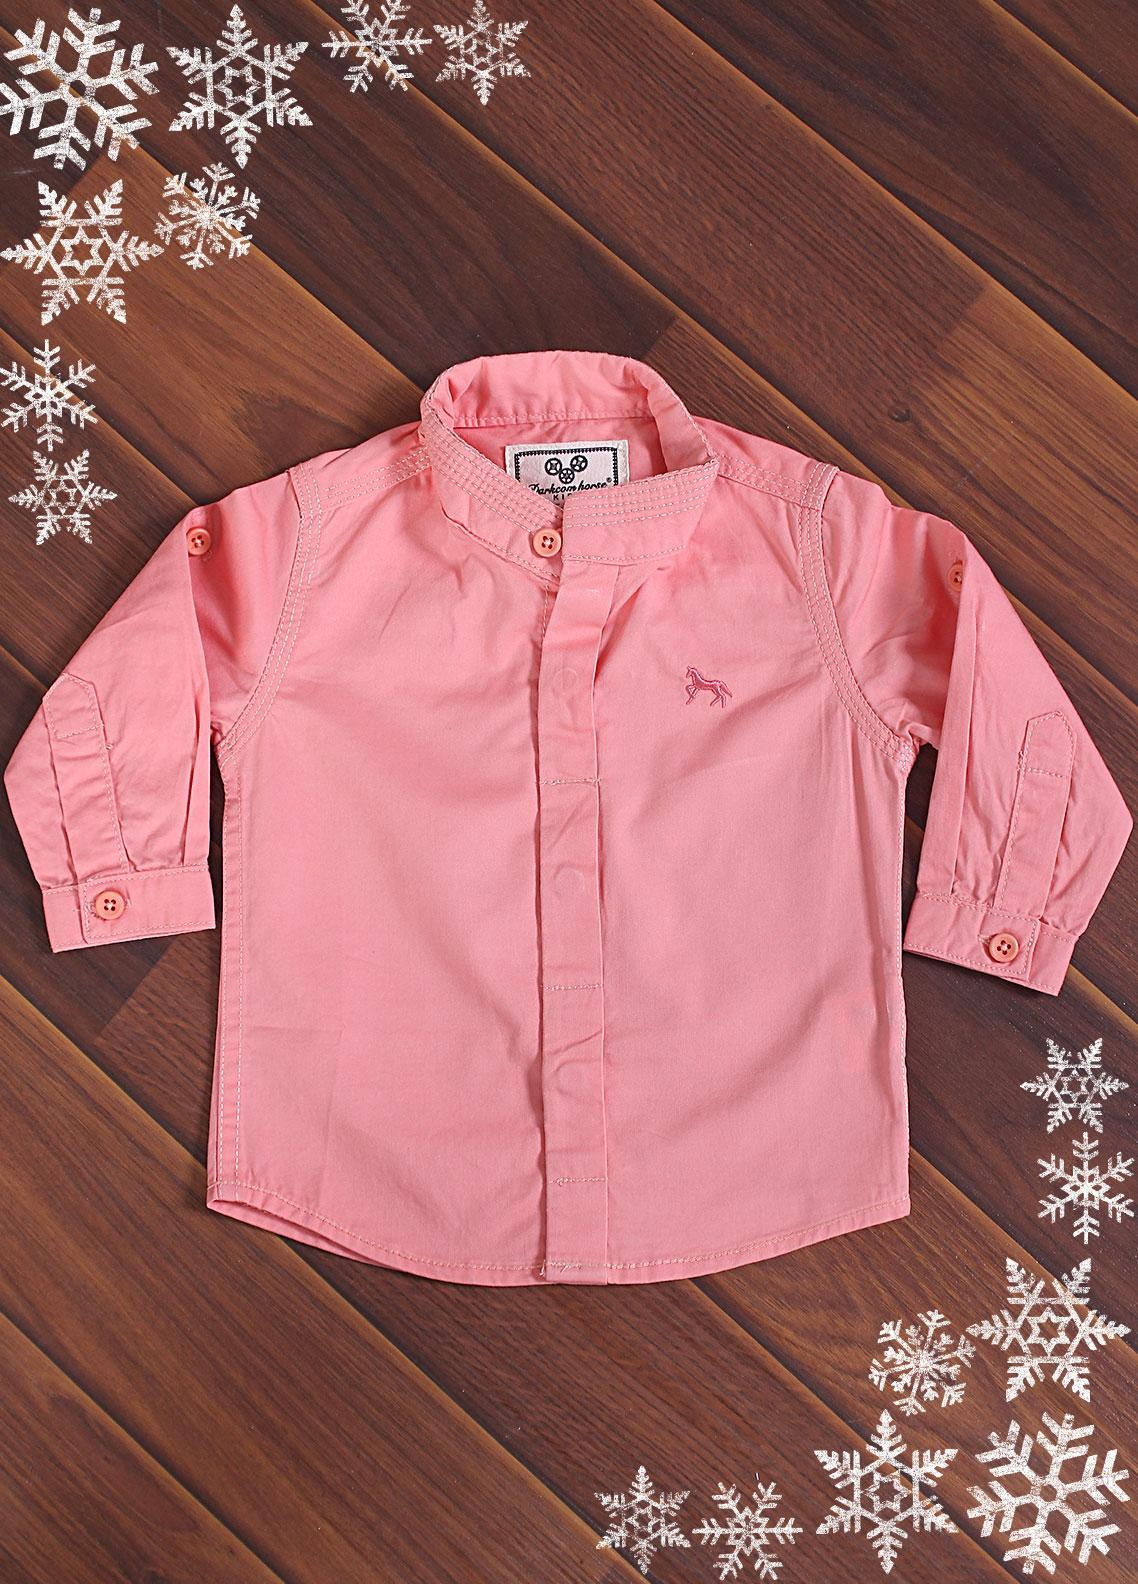 Sanaulla Exclusive Range Cotton Casual Shirts for Boys -  DS042A Pink